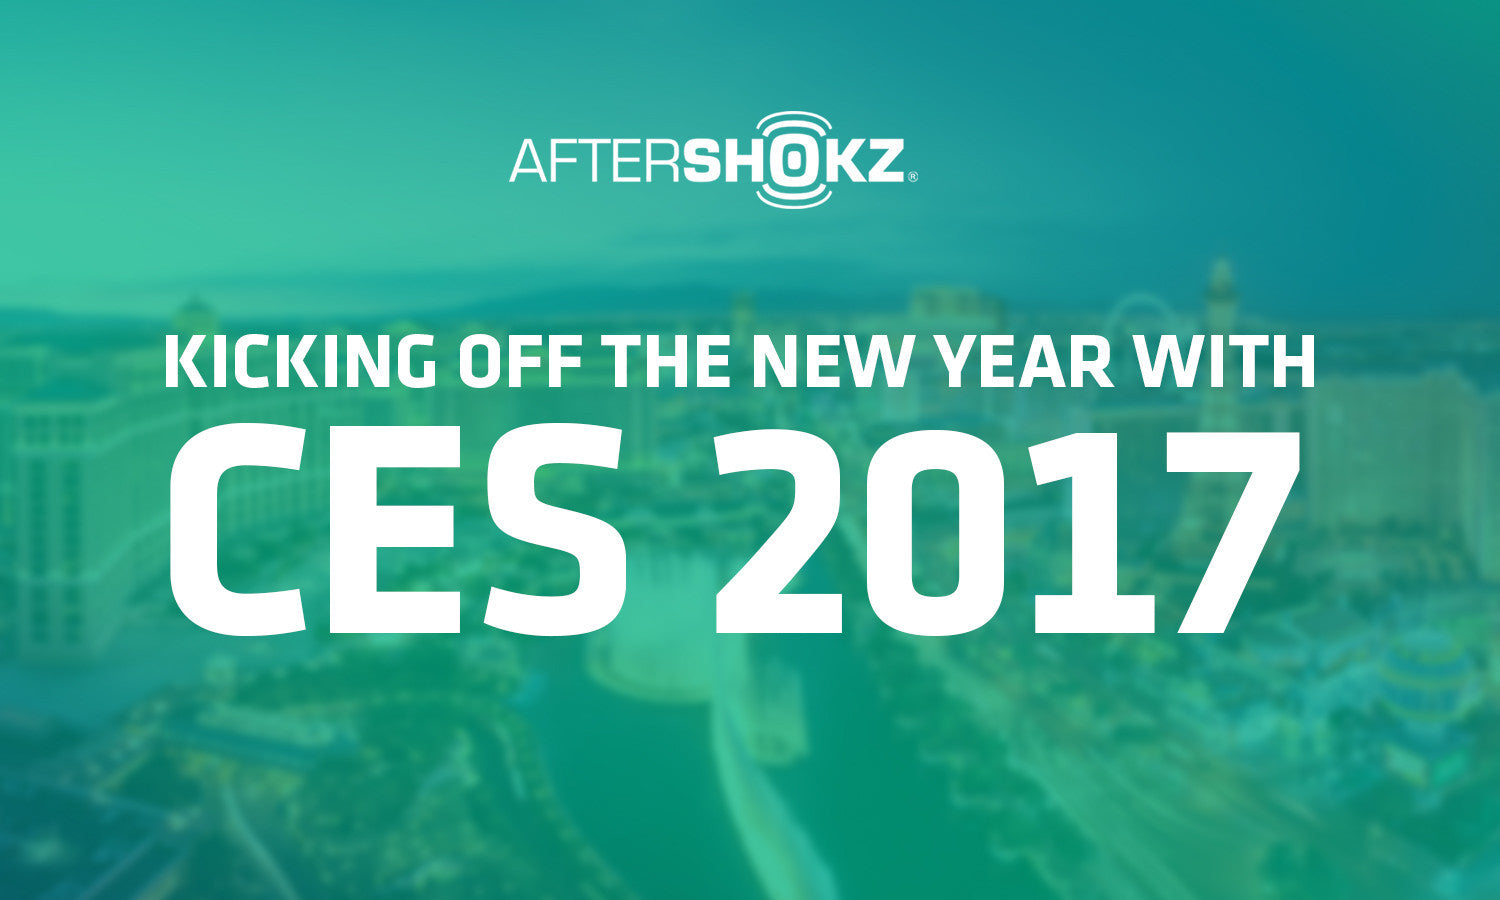 Kicking off the New Year with CES 2017